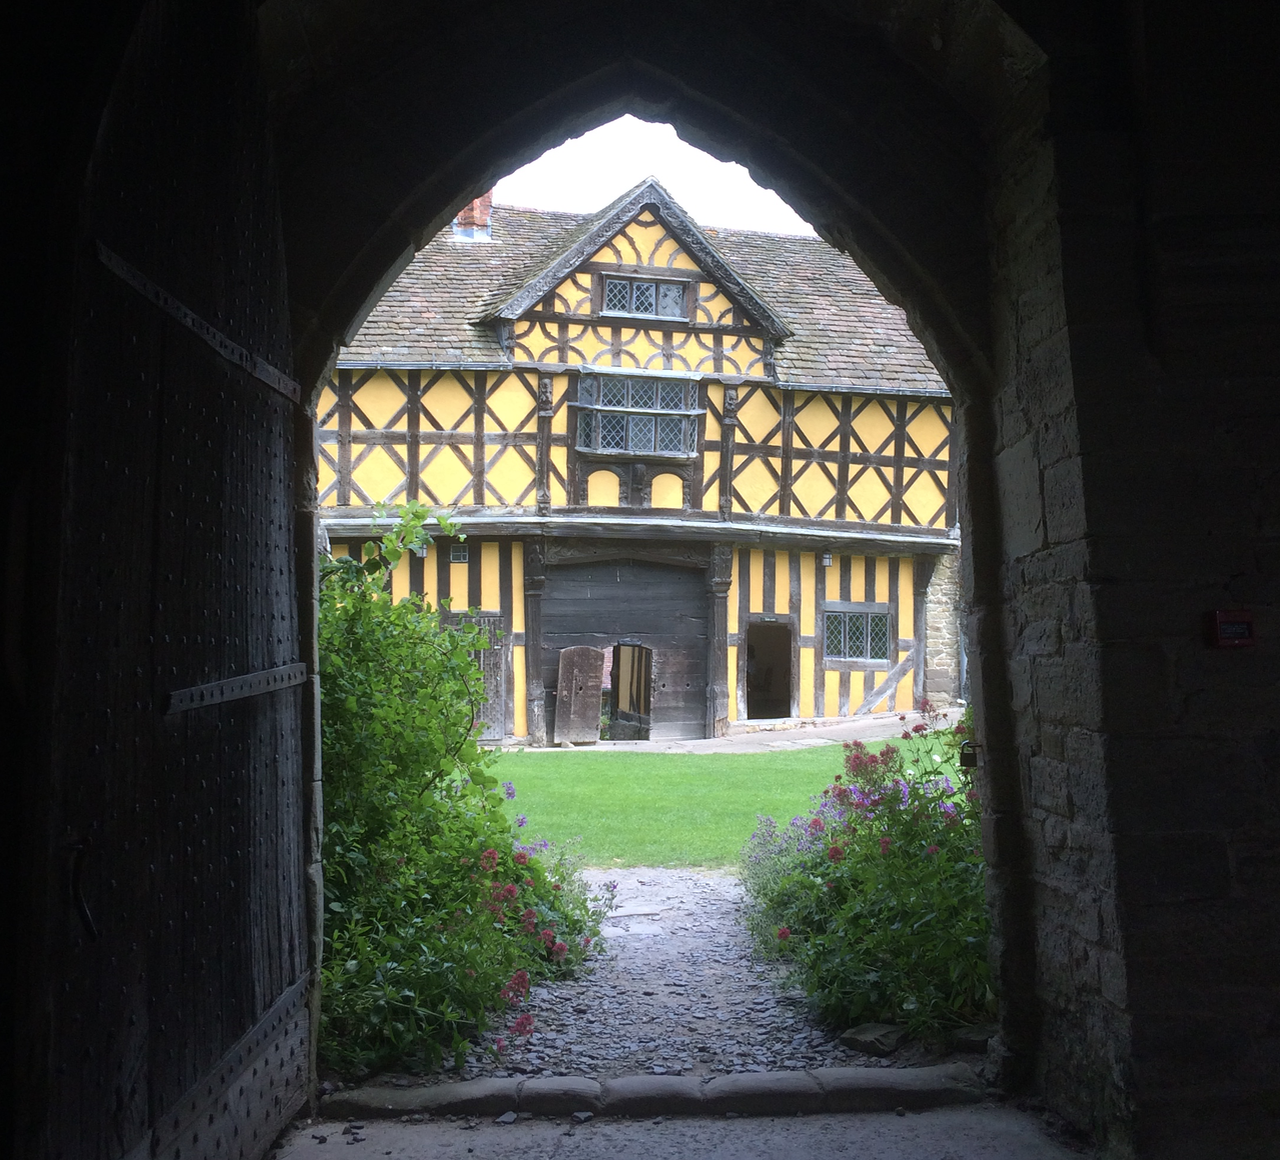 The Gatehouse at Stokesay Castle